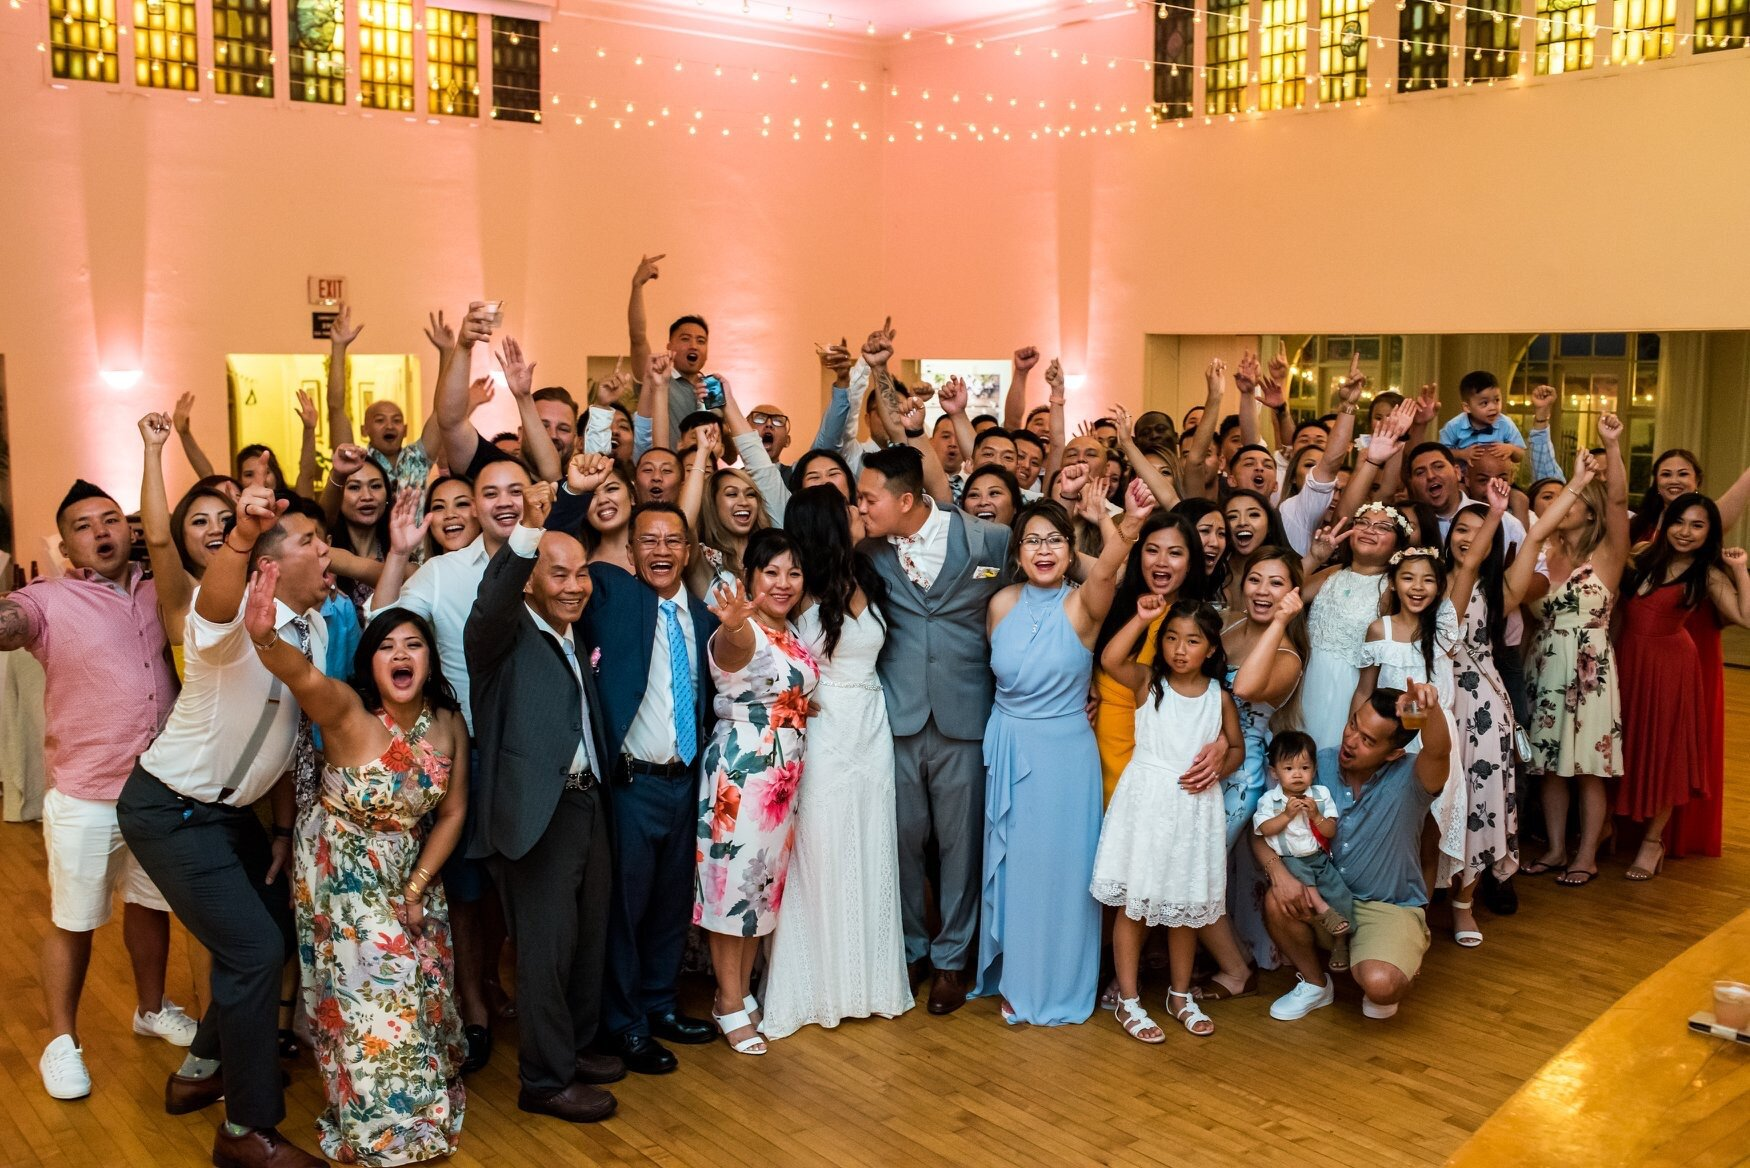 Our most popular services in the La Jolla area are: Wedding DJ /MC,Wedding Guitarists, and Uplightingfor Receptions, Cocktail Hours, and Wedding Receptions -